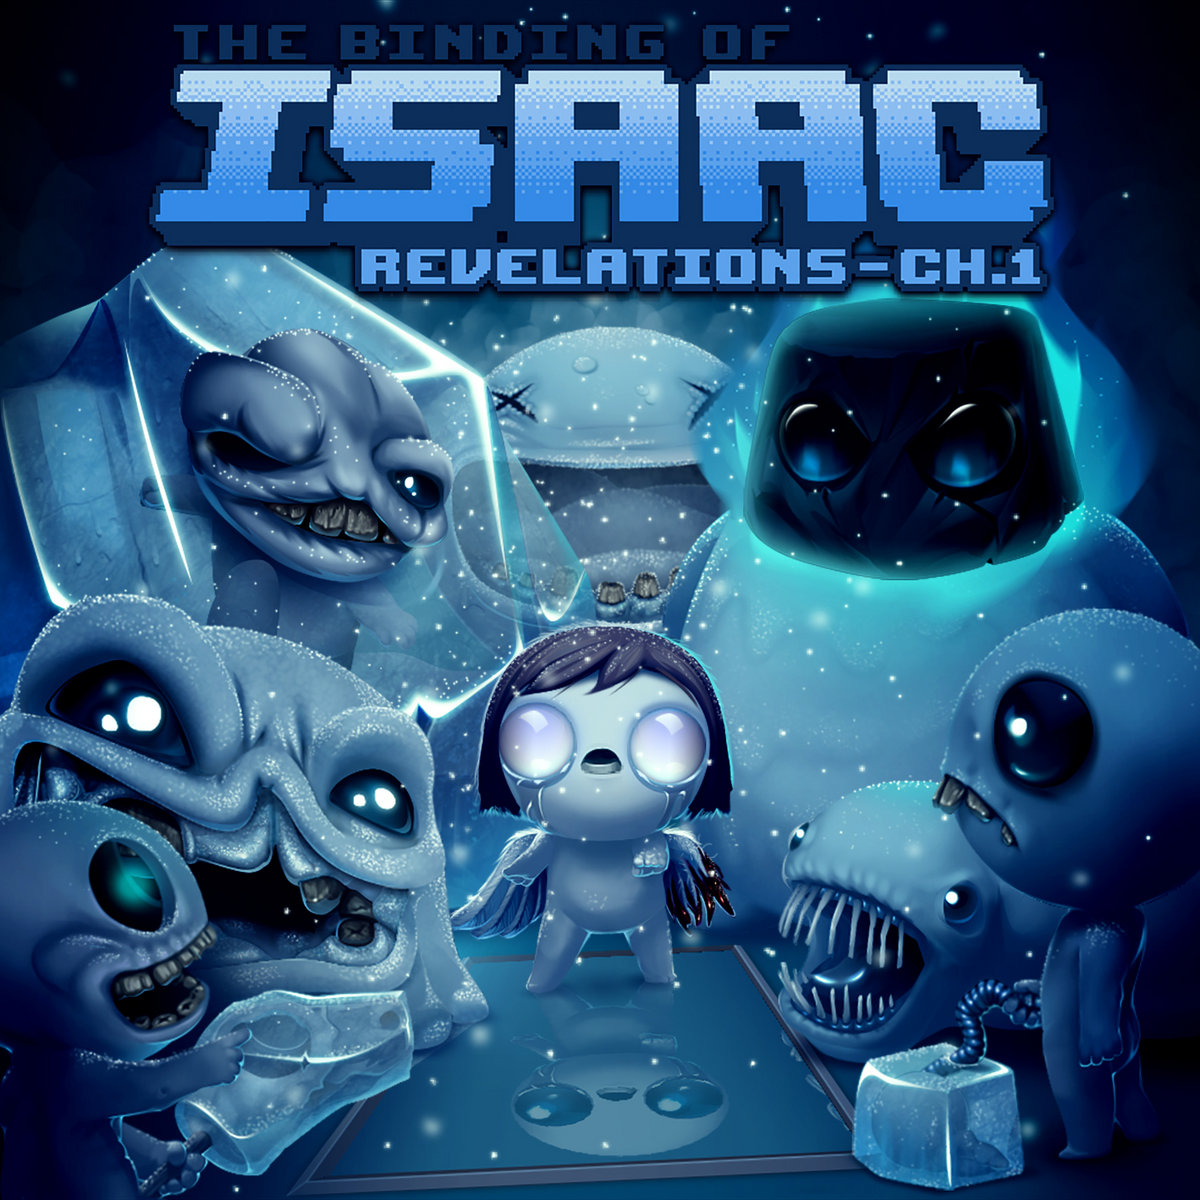 the binding of isaac antibirth soundtrack download